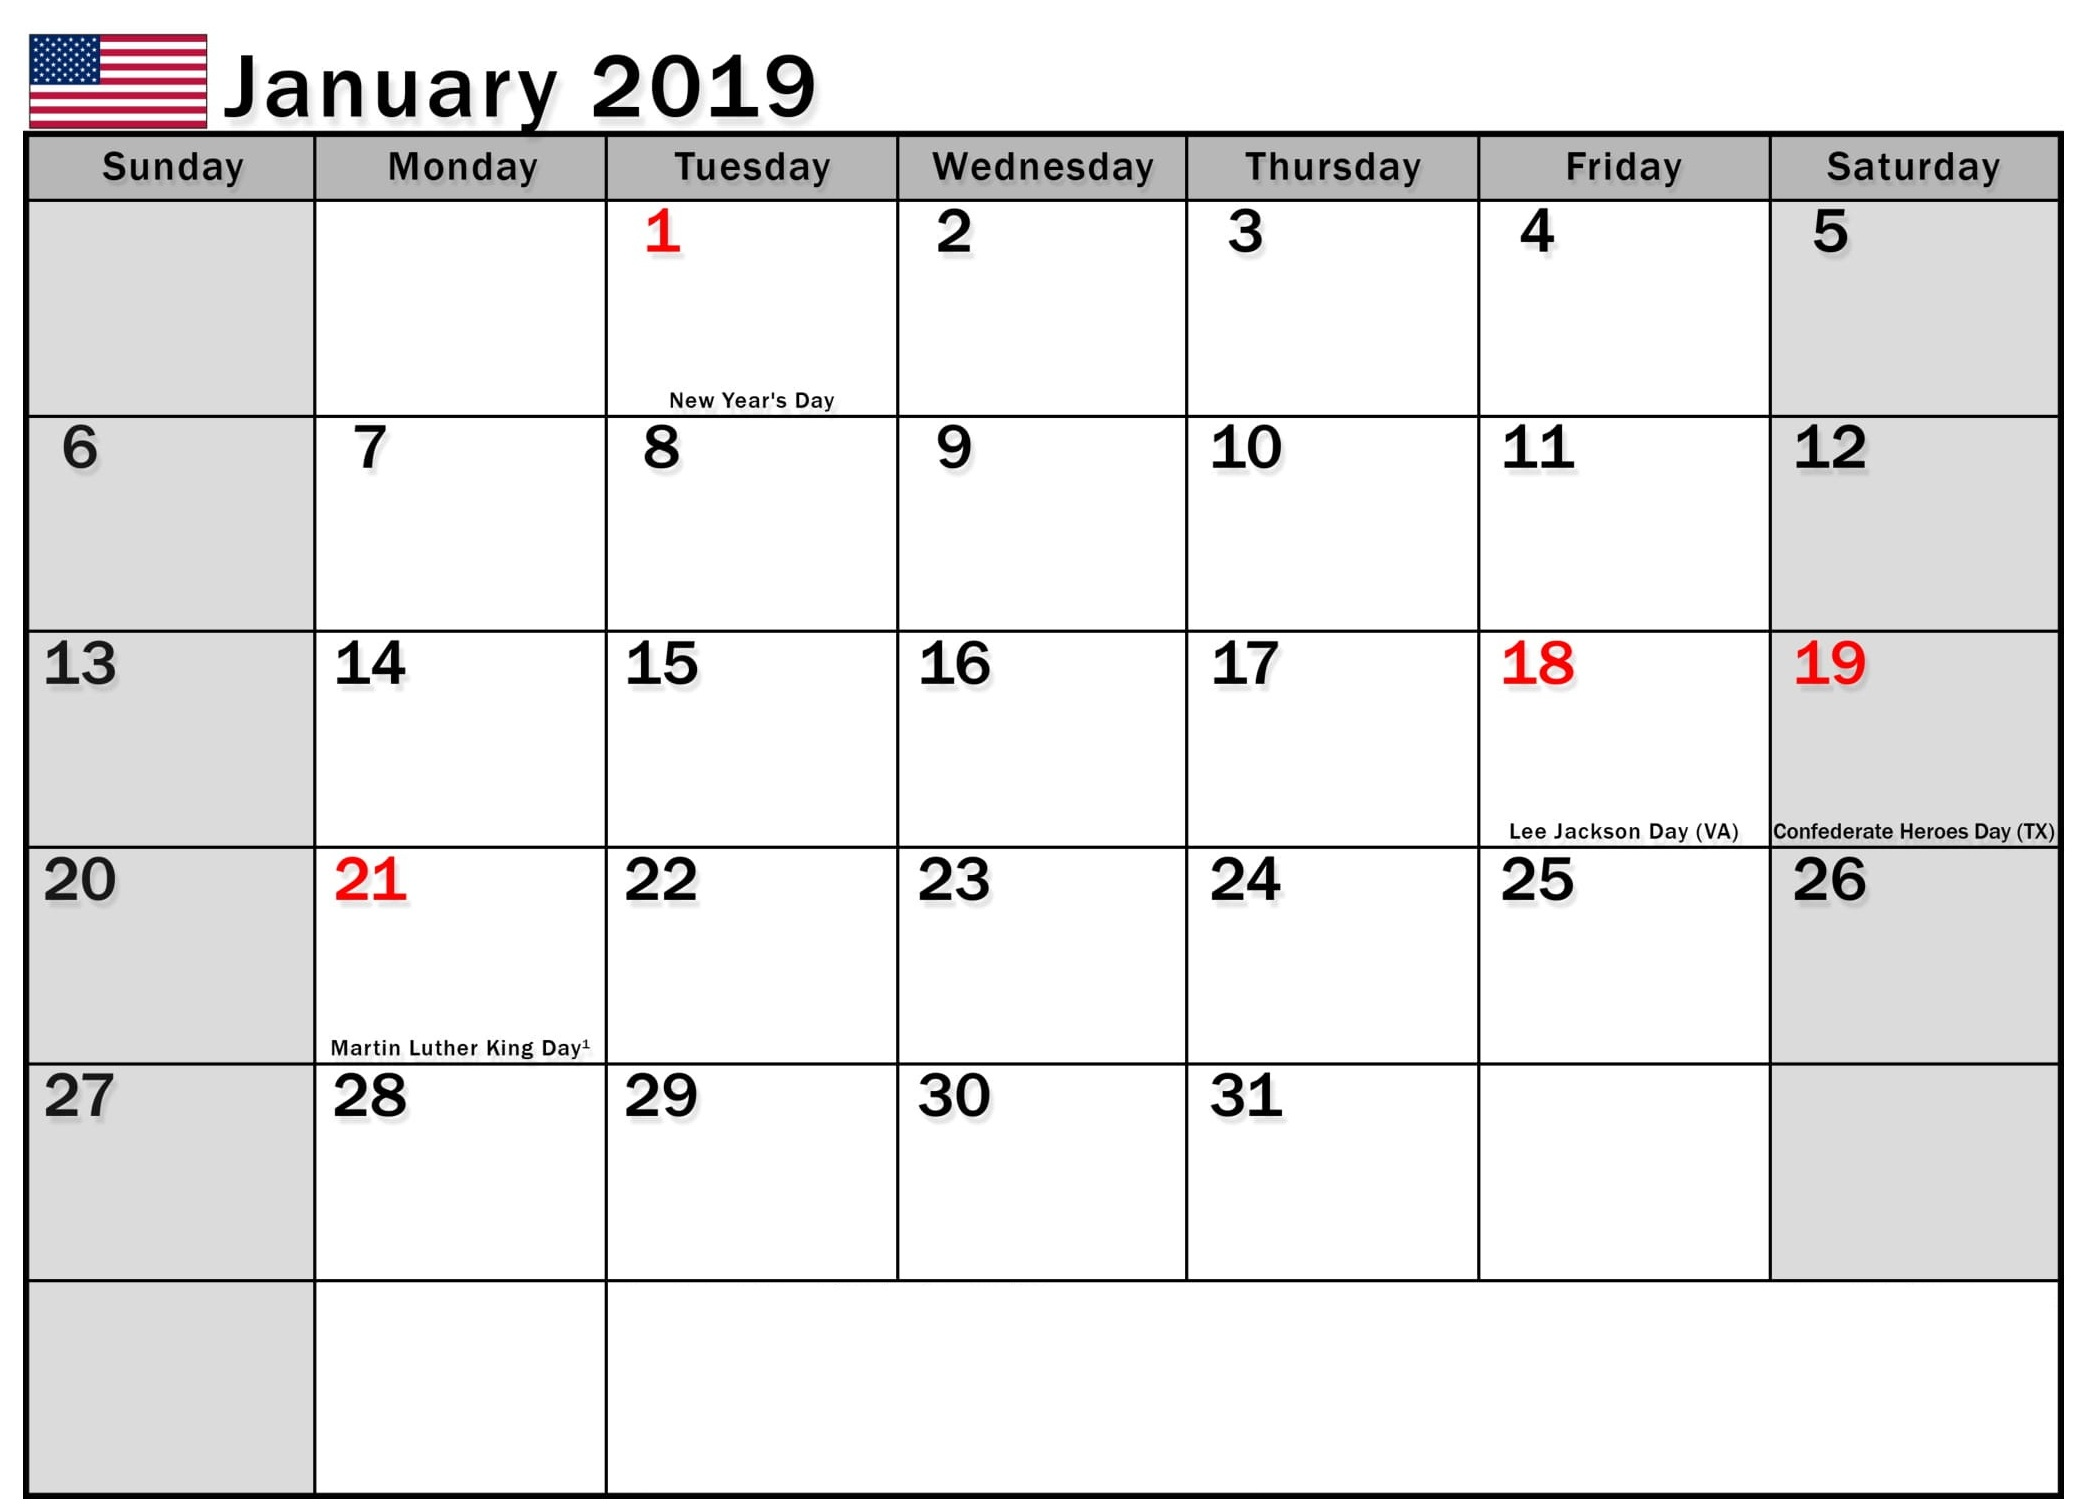 January 2019 Calendar USA Printable